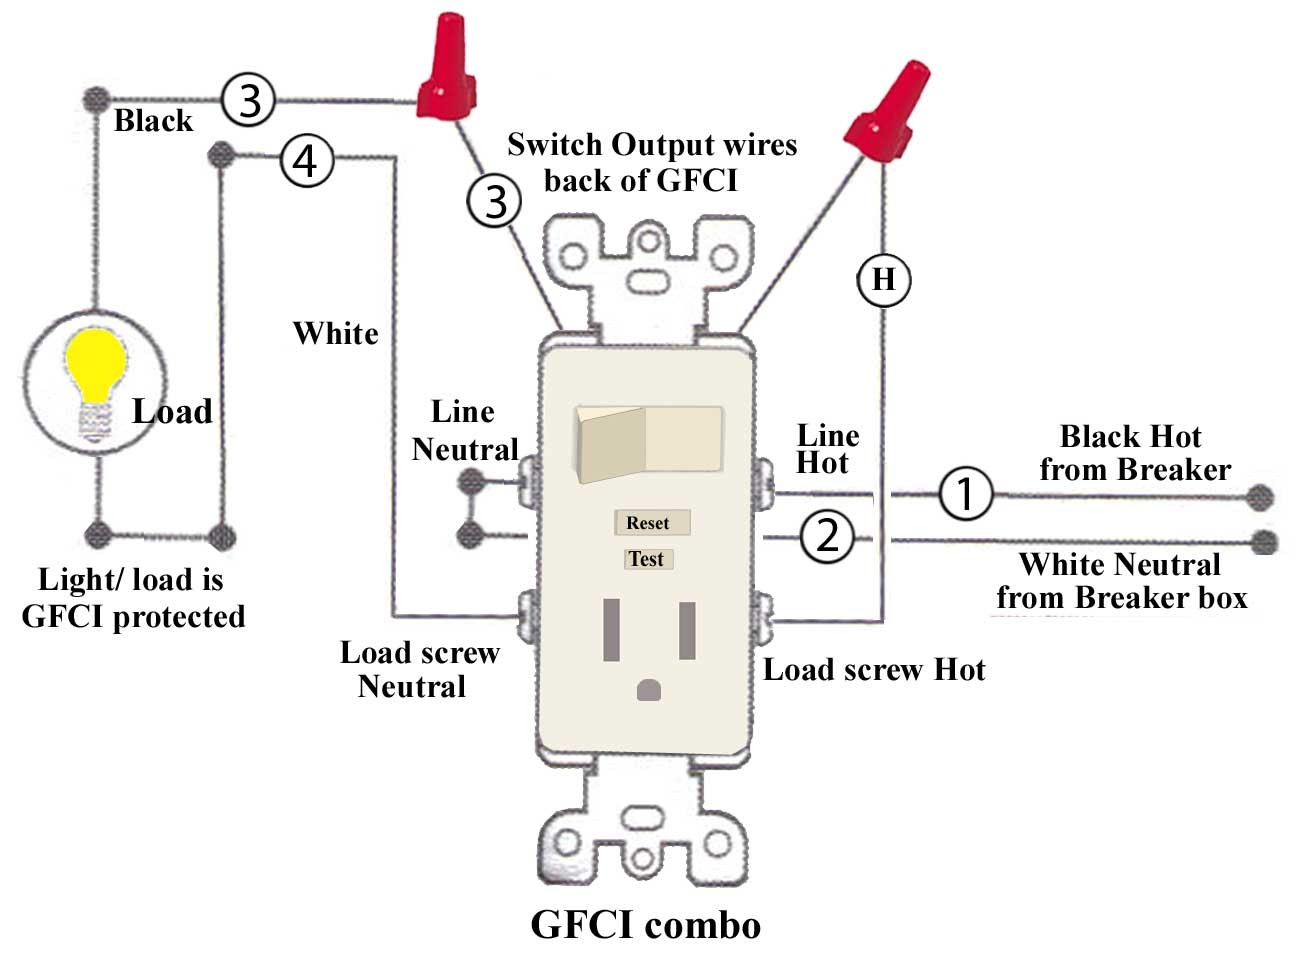 Wiring Diagram Additionally A Line Load Gfci Outlet Aemc Cbi 1 Circuit Breaker Tracer And Identifier Ebay Receptacle New Image Rh Mainetreasurechest Com